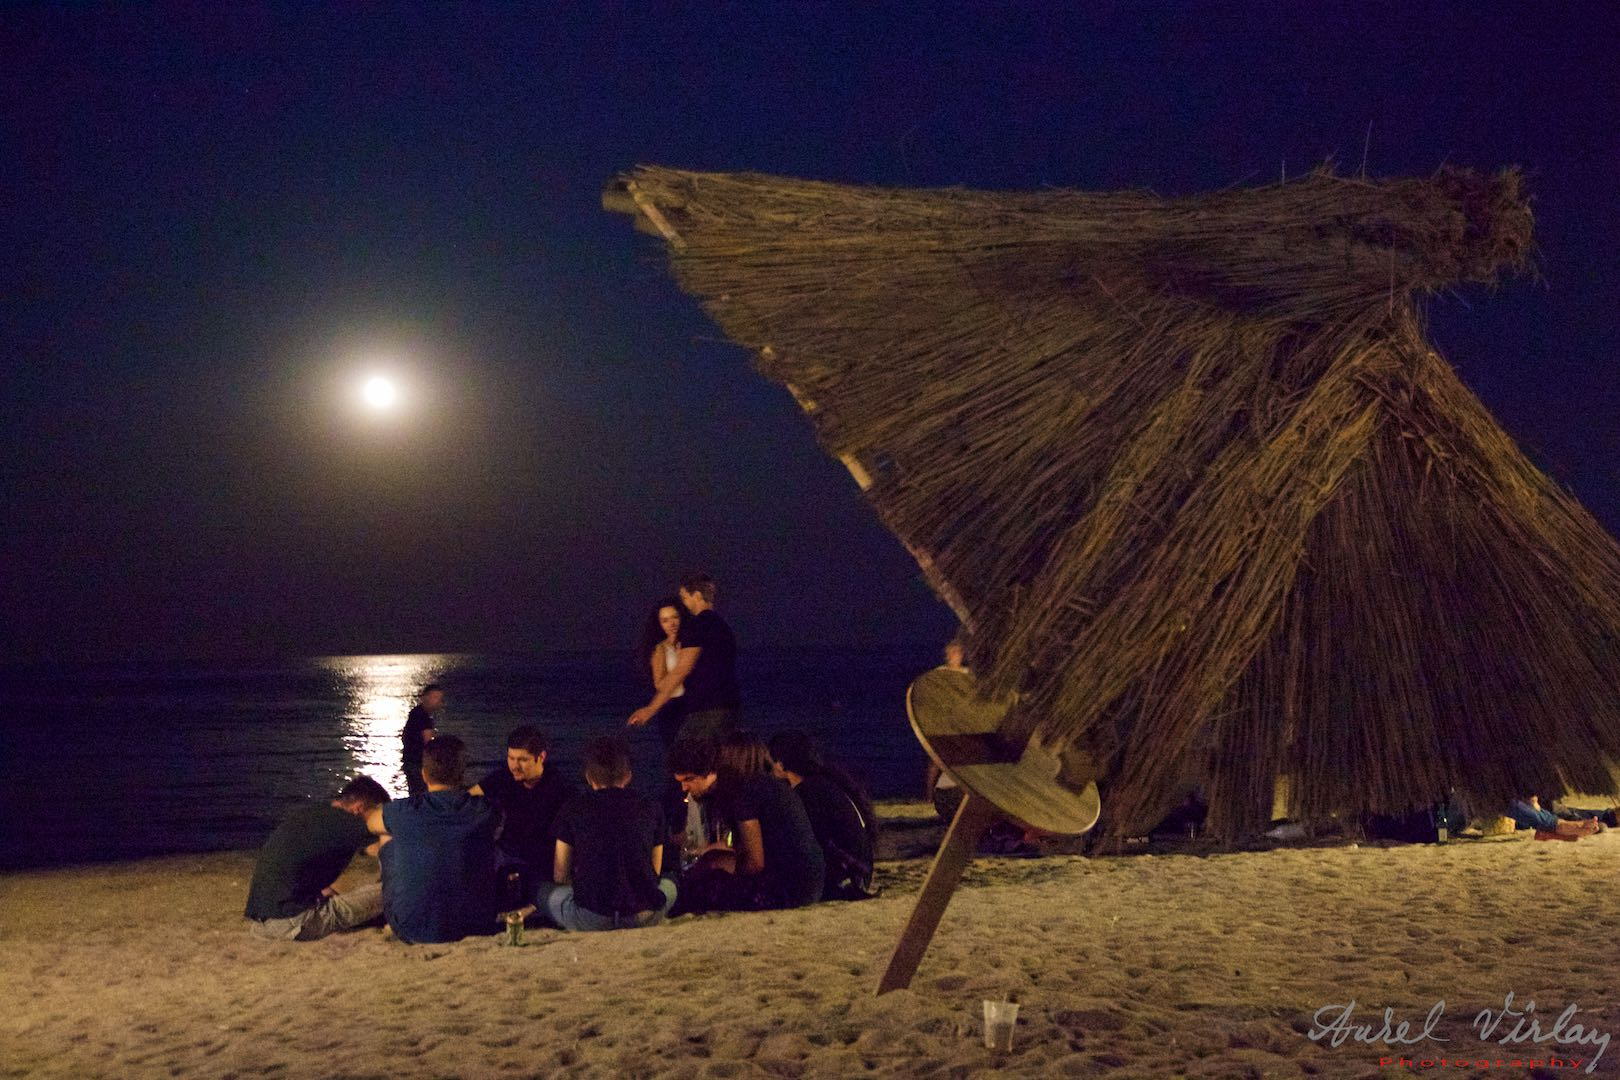 Moonlight over the Black Sea on *Plaja de Carte* beach. Night photography by Aurel Virlan.